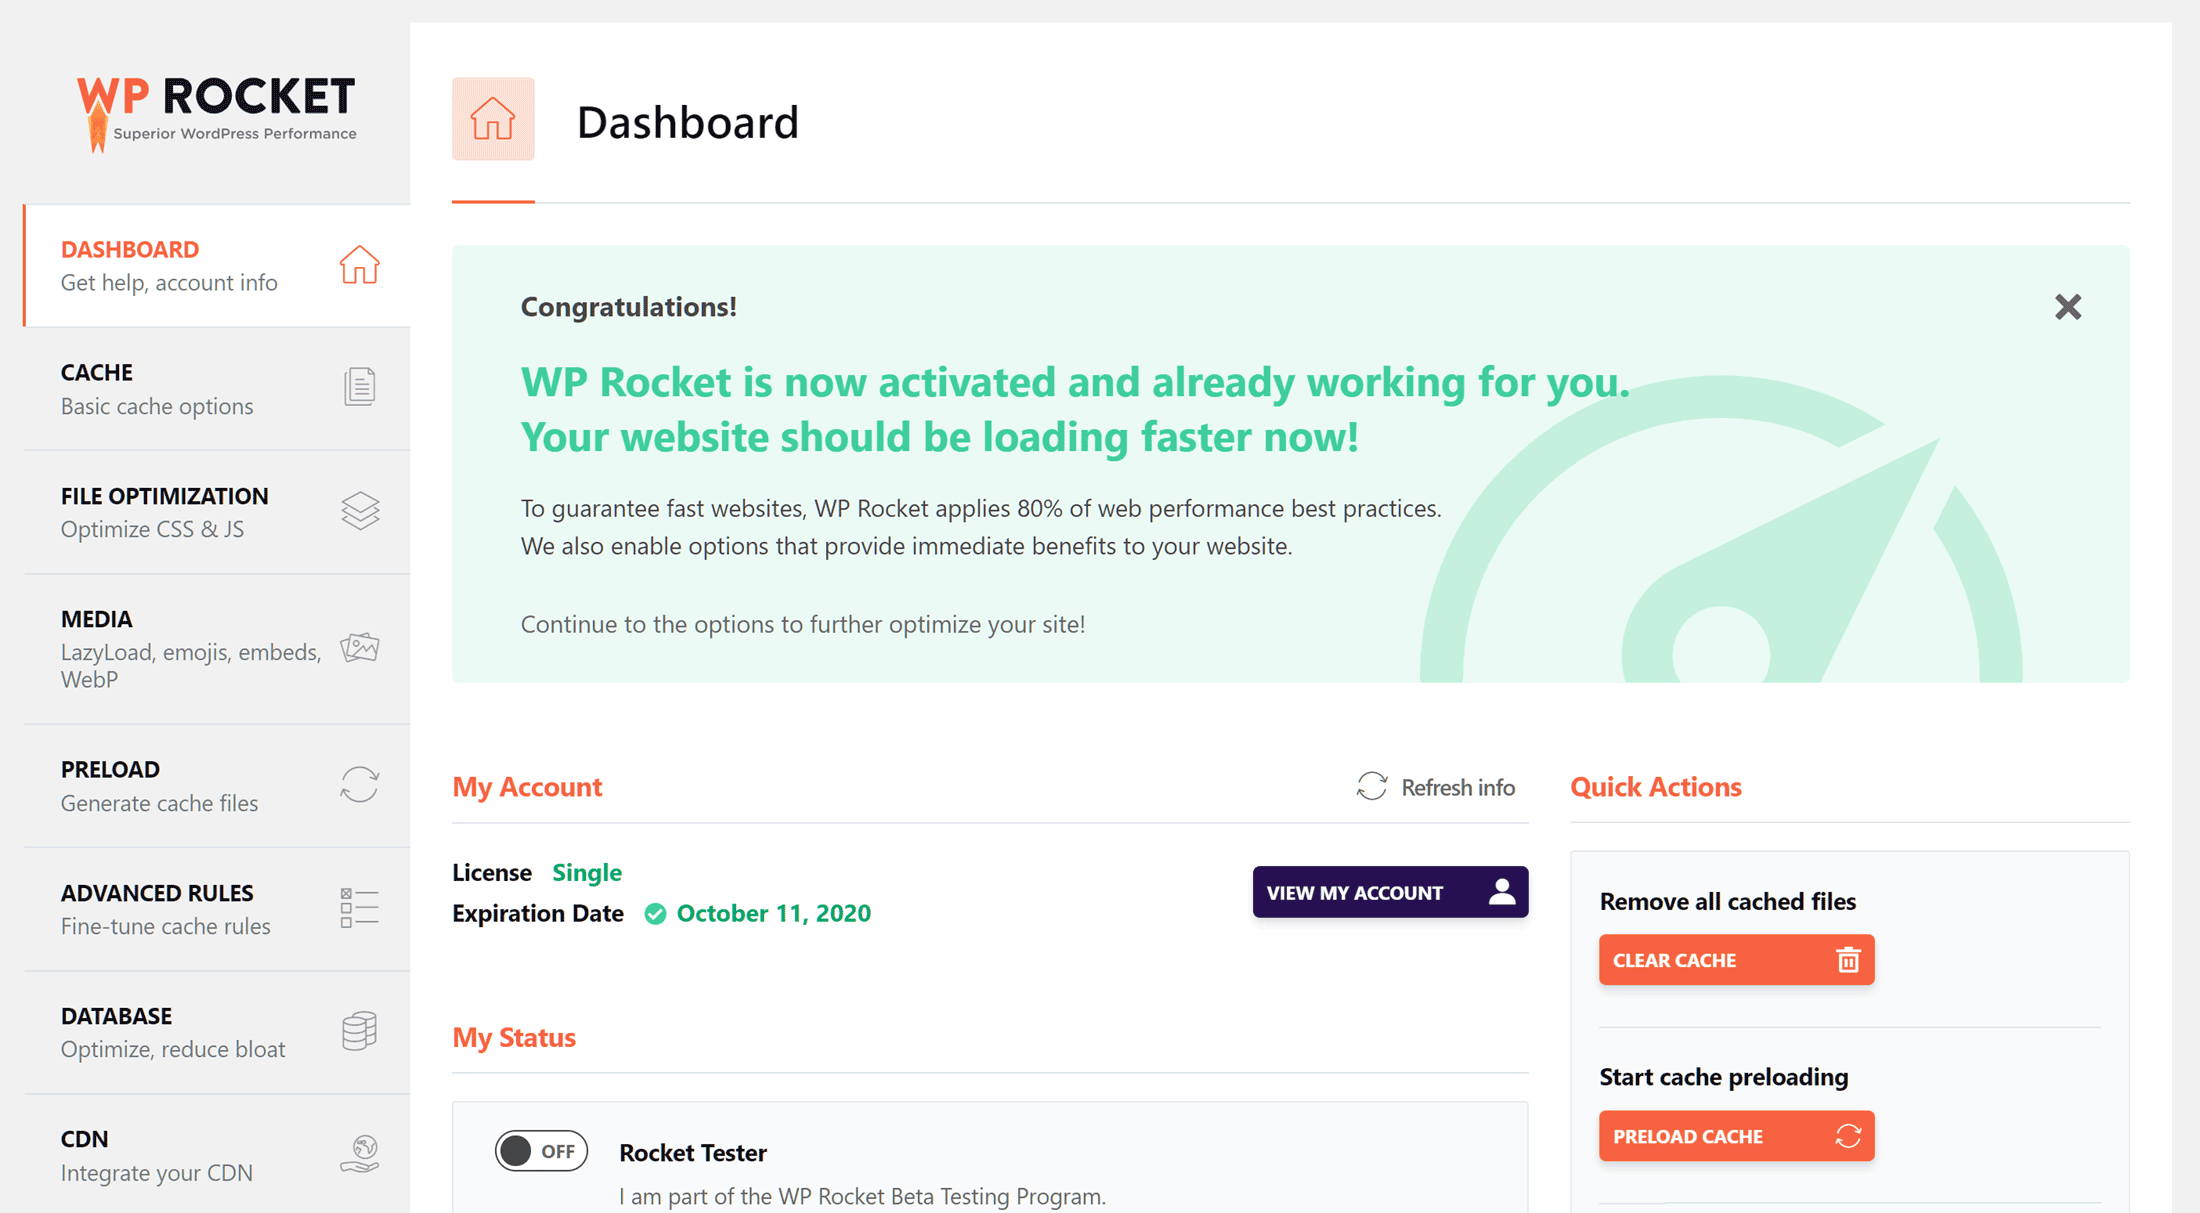 WP Rocket Dashboard